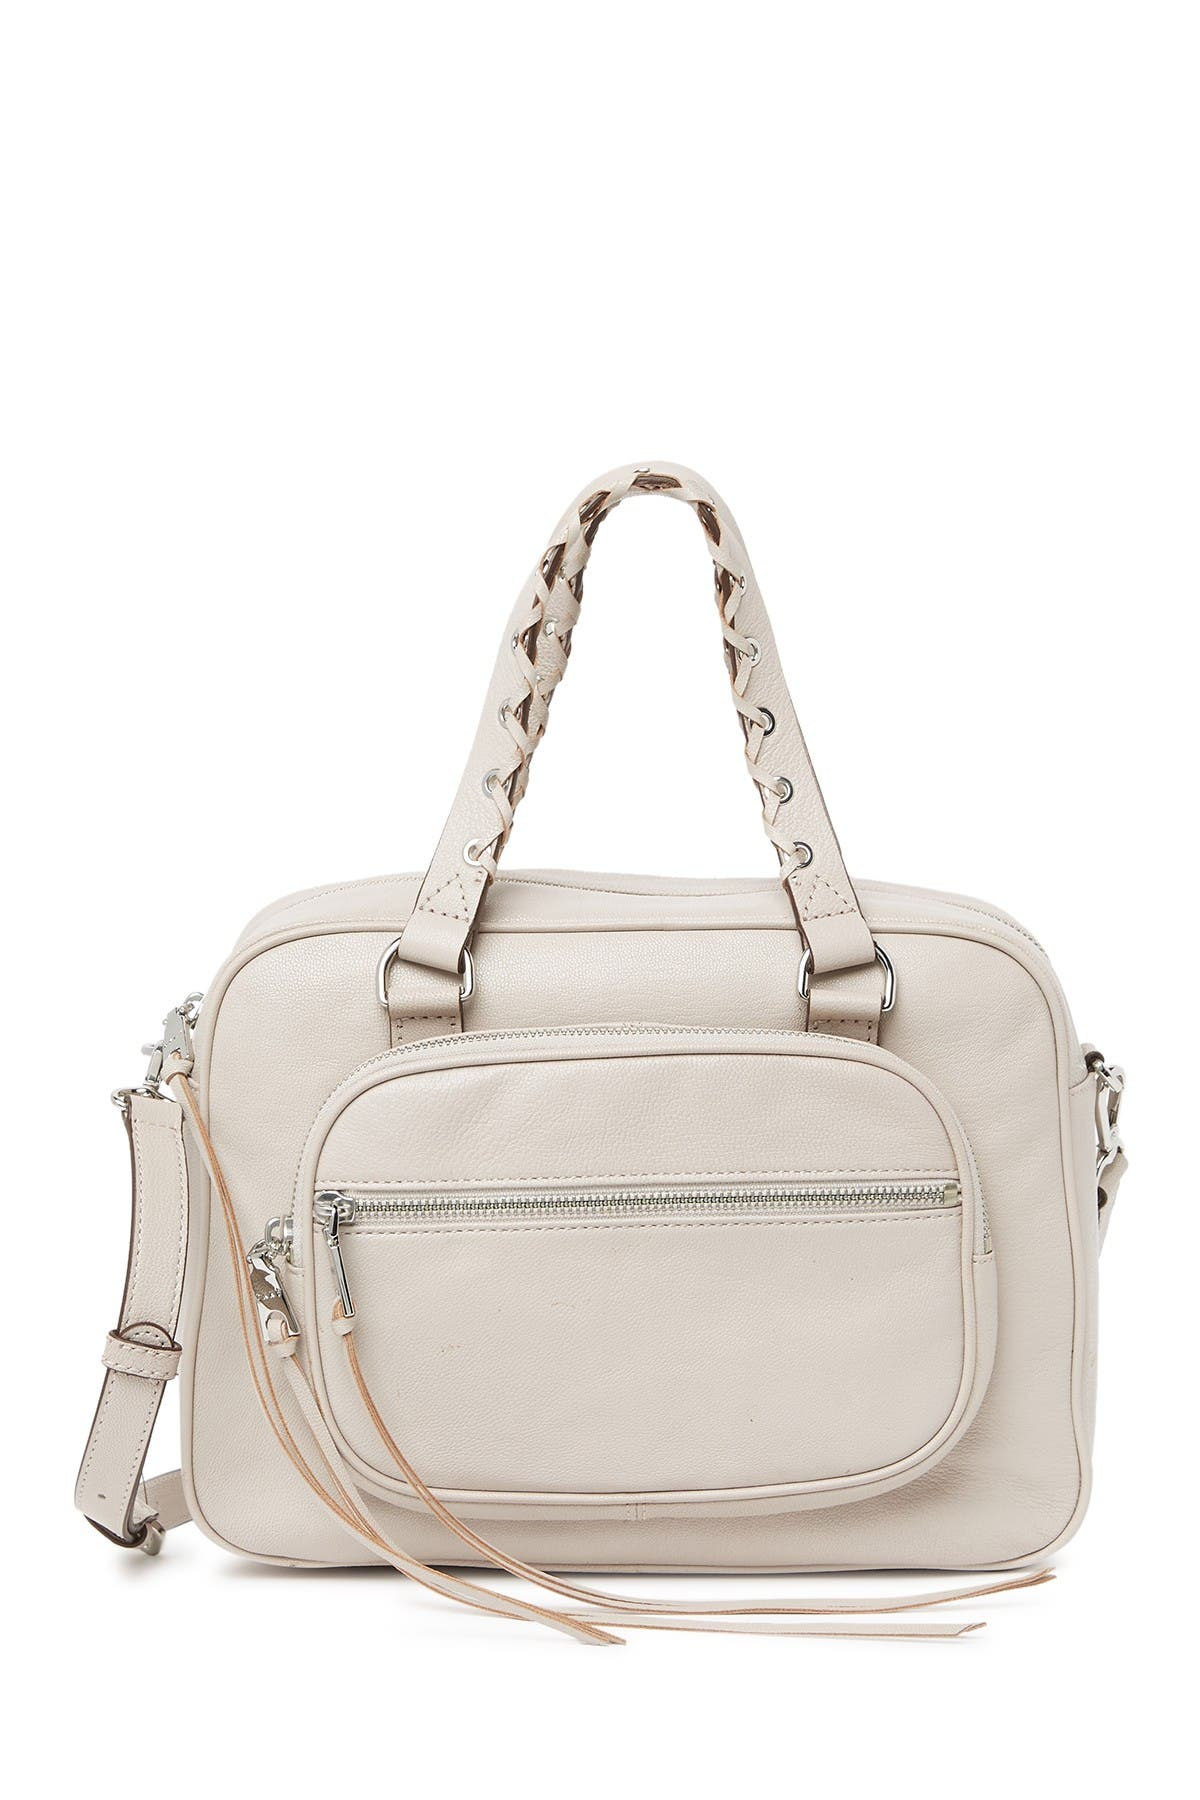 Image of DKNY Shanna Leather Satchel